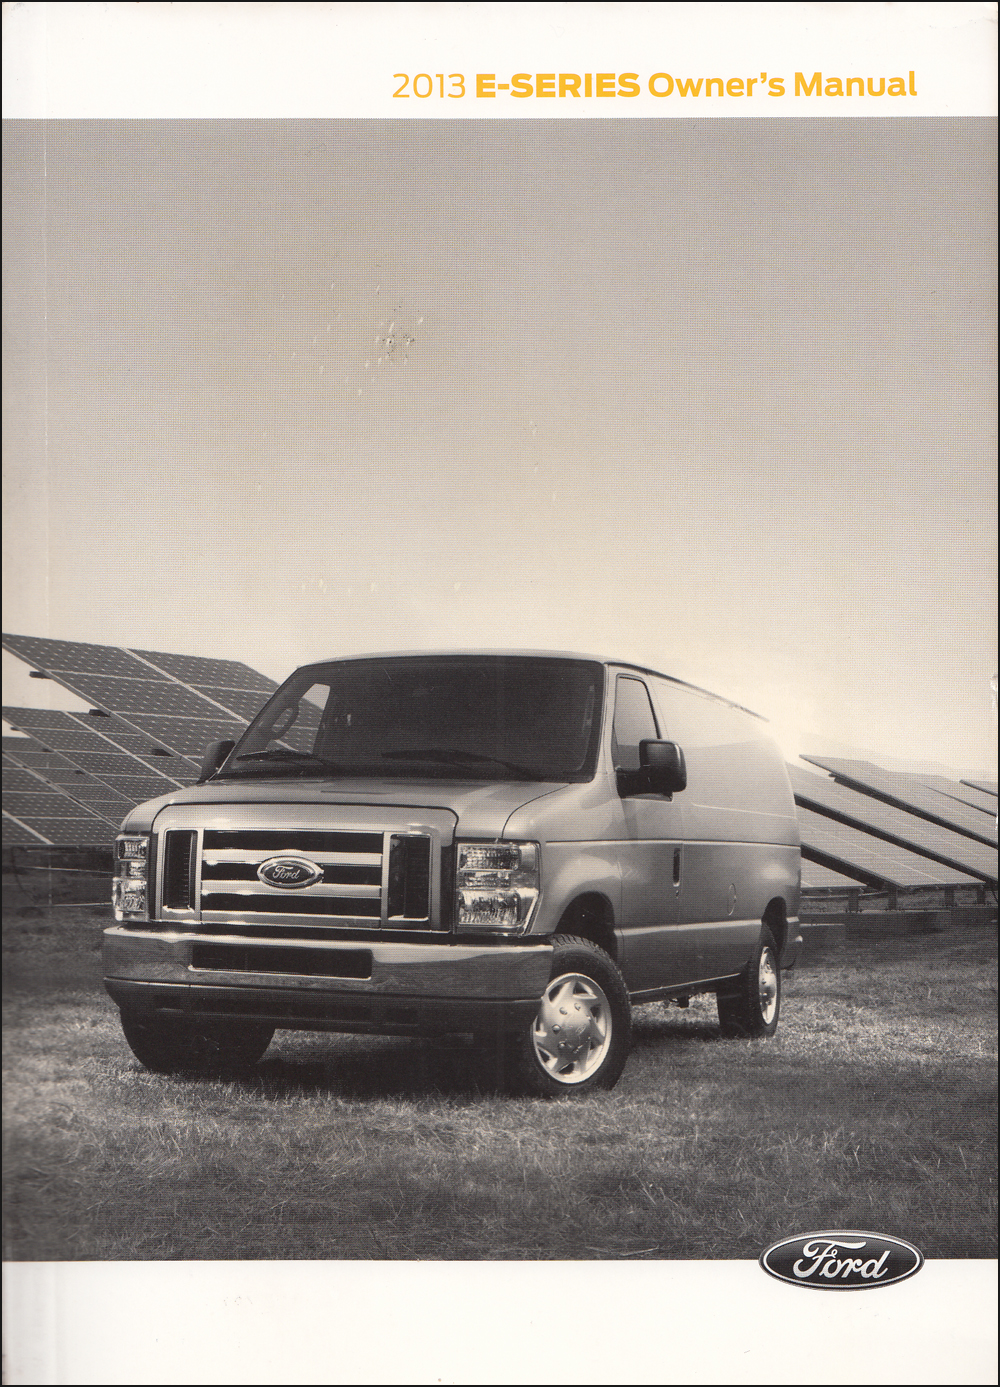 2013 Ford E-Series Econoline Owner's Manual Original